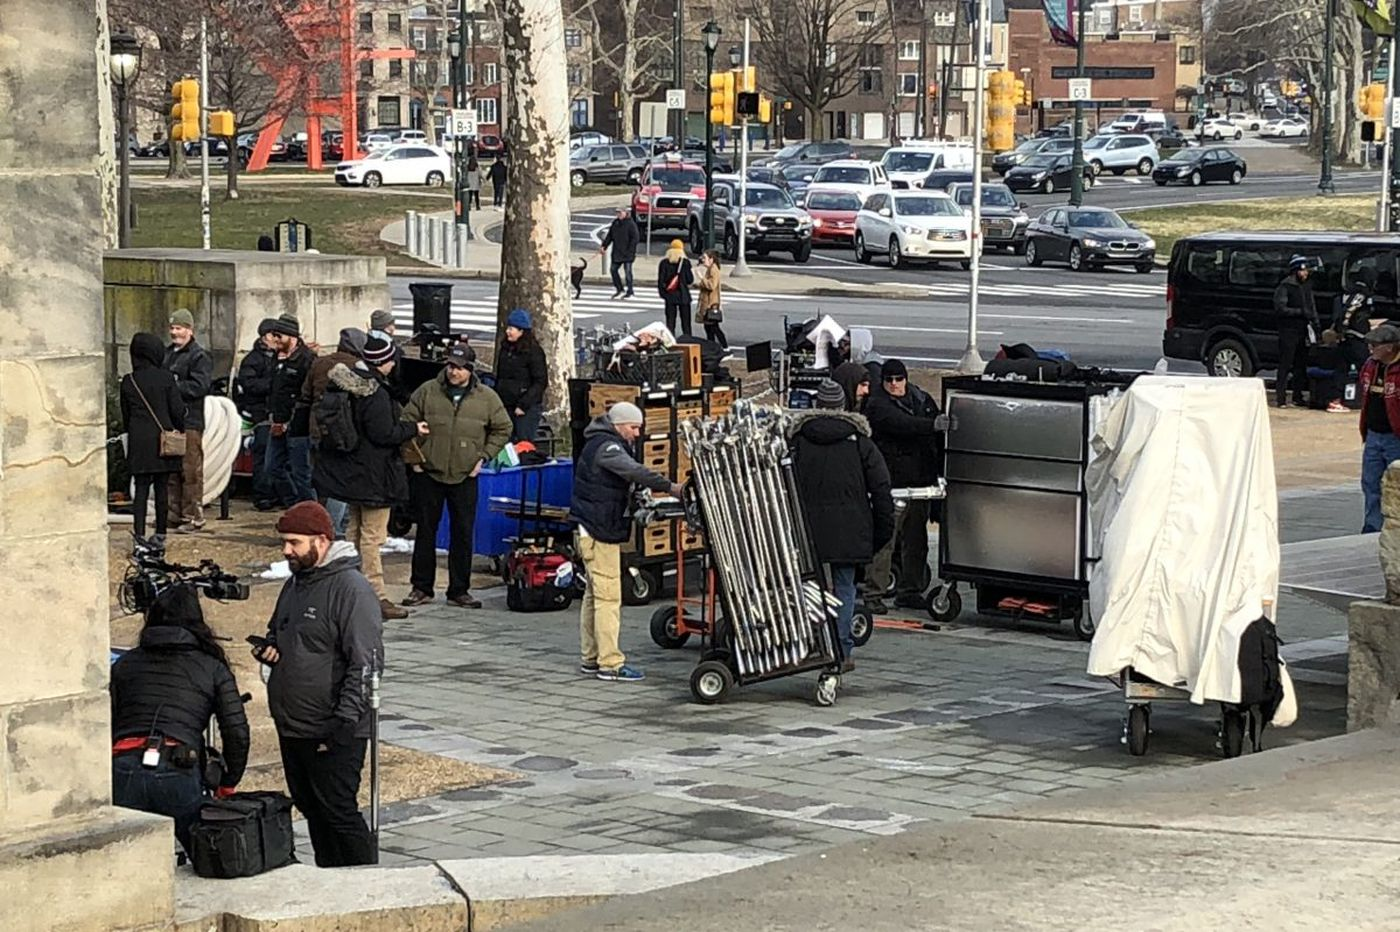 'Creed II' filming at the Art Museum: Dolph Lundgren spotted